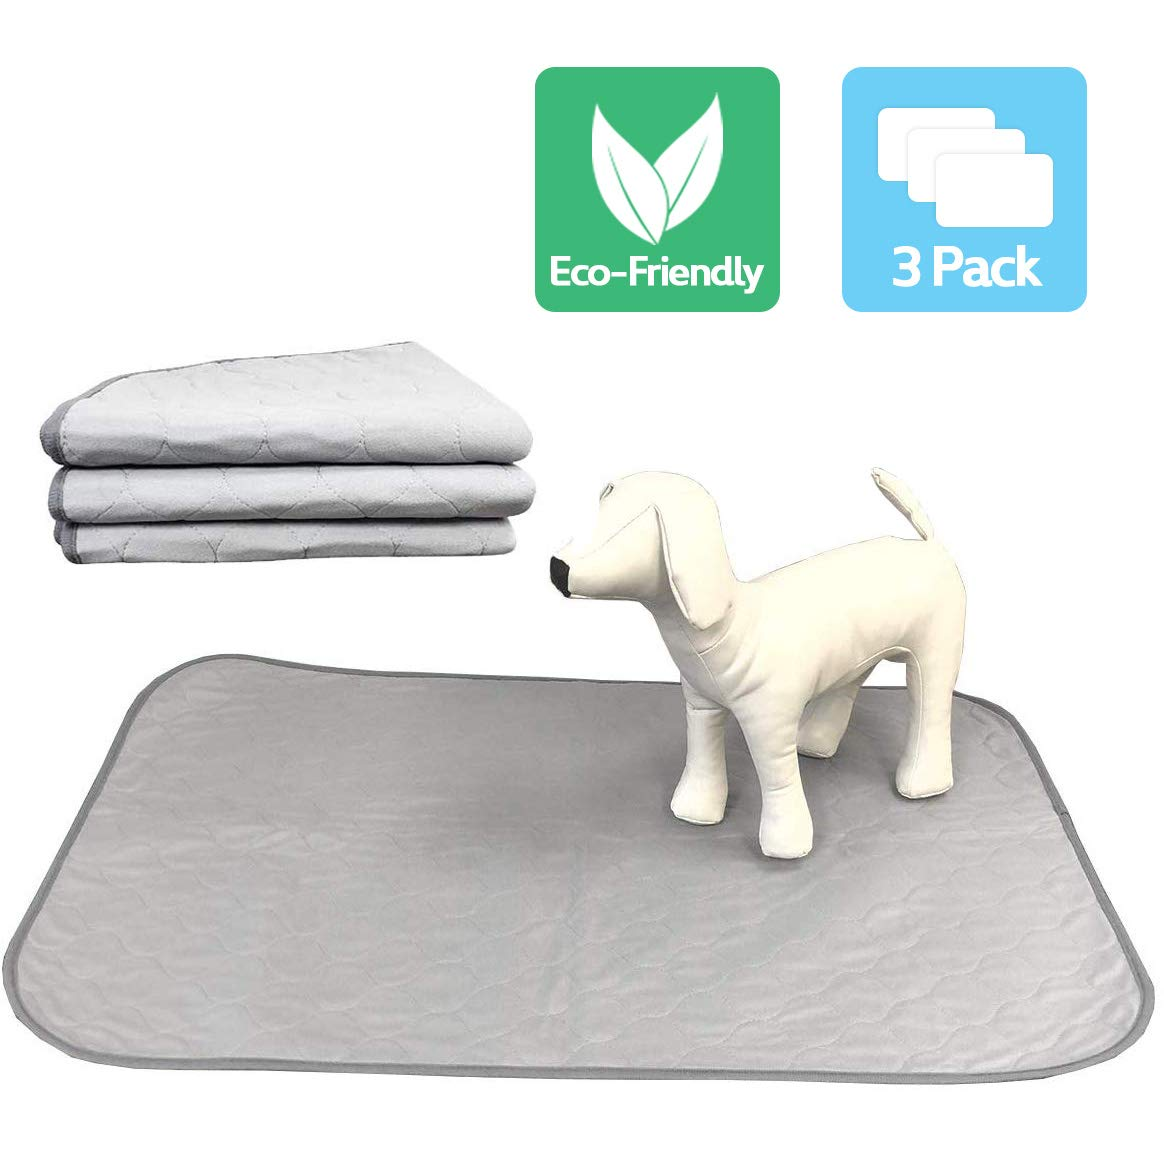 Highly Absorbent Reusable Washable Pet Training Pads with Waterproof Bottom (Pack of 3) Grey Fit Standard Cage by Pet Magasin